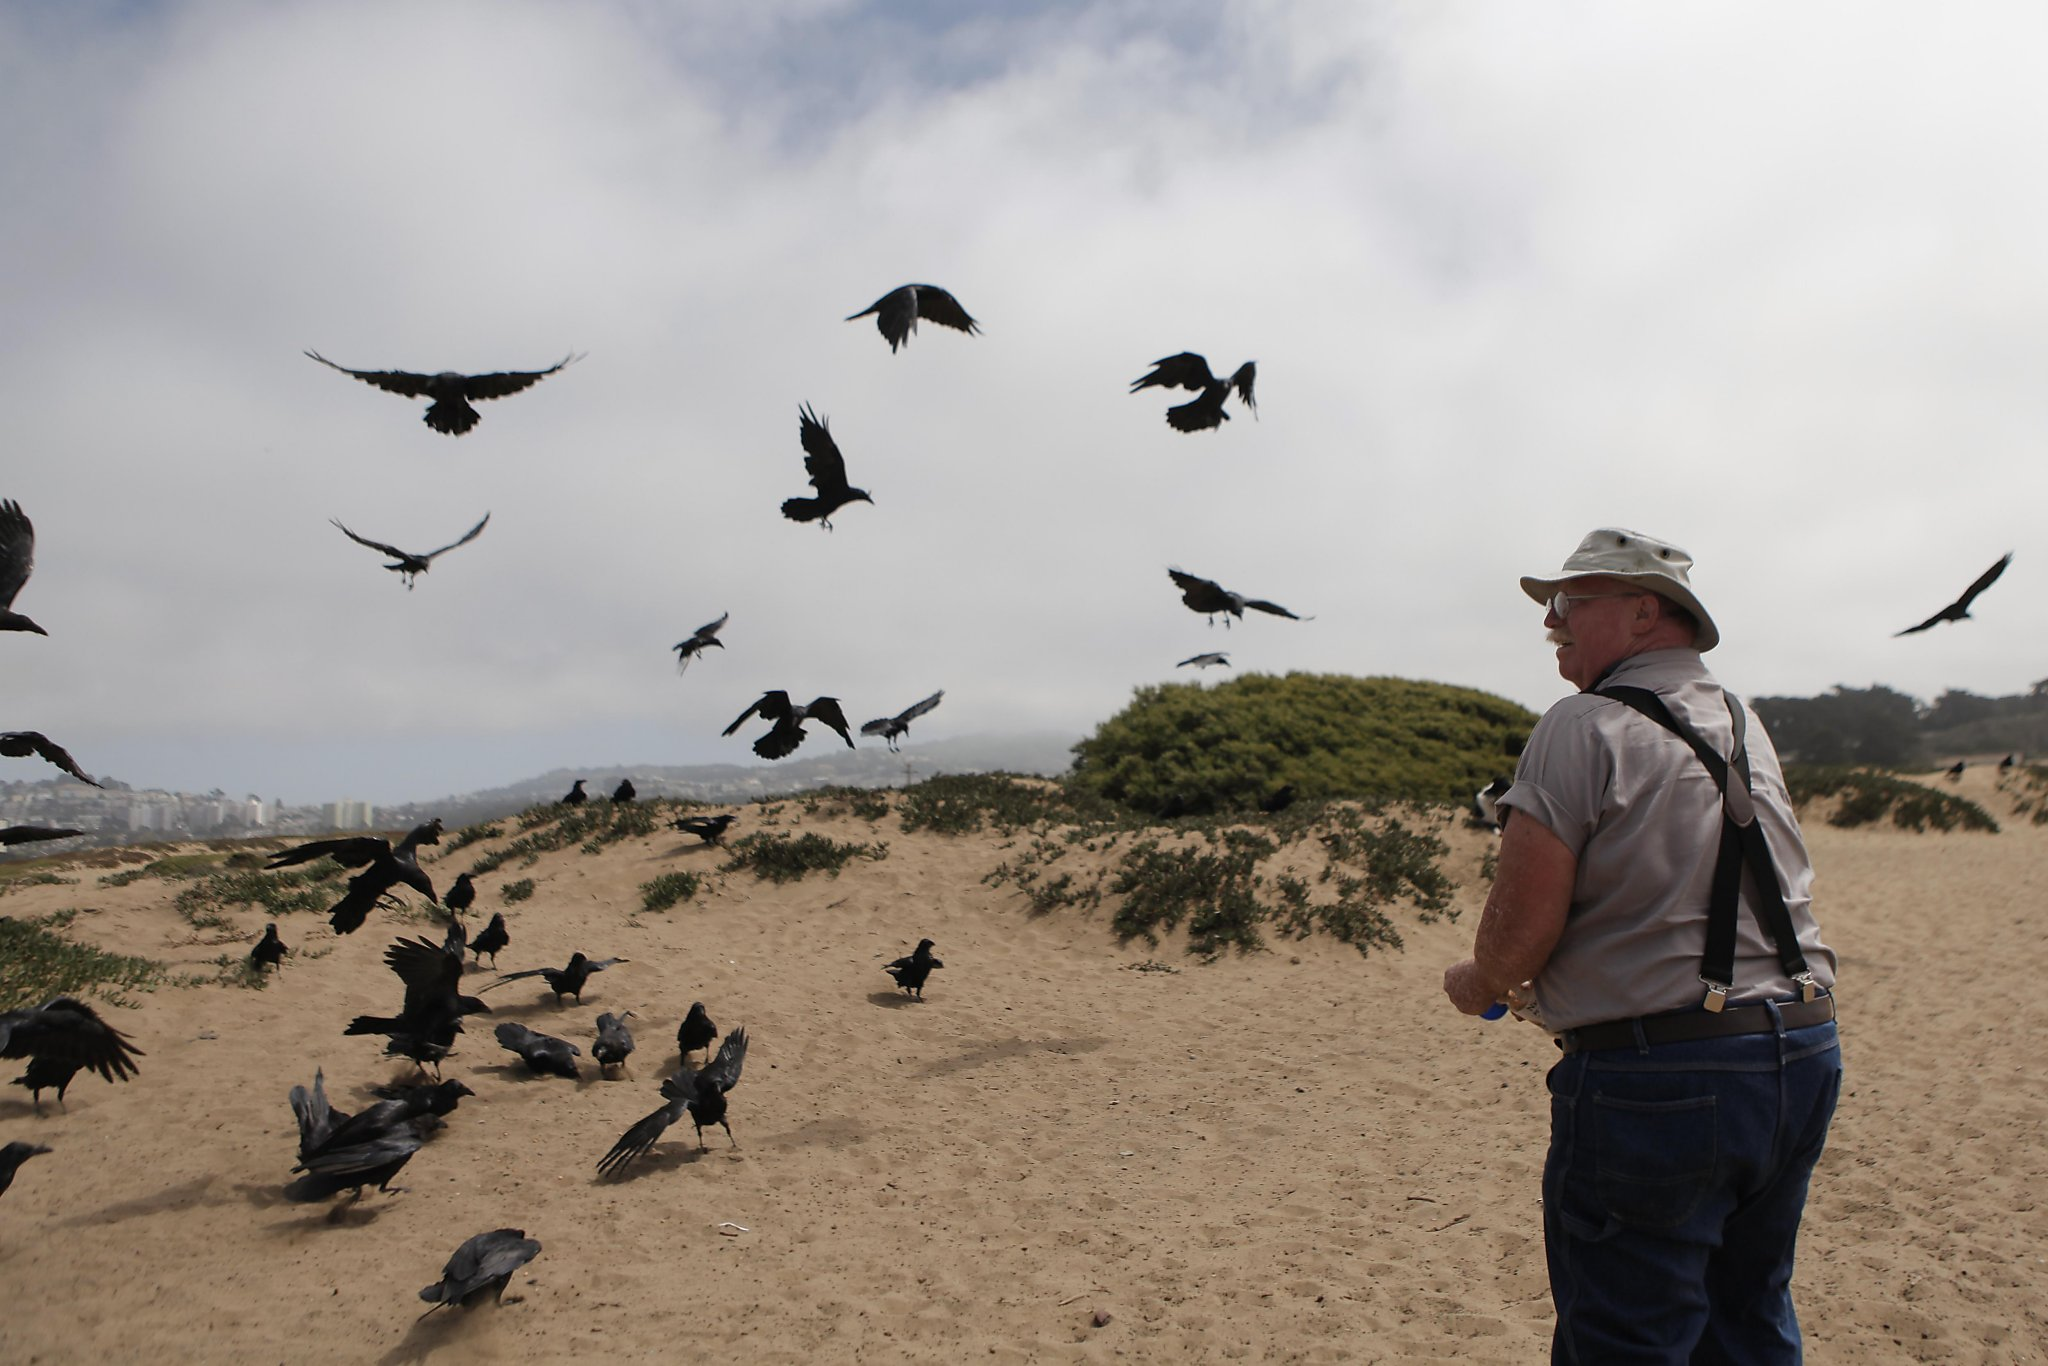 Just like Millennials': Raven, crow populations have